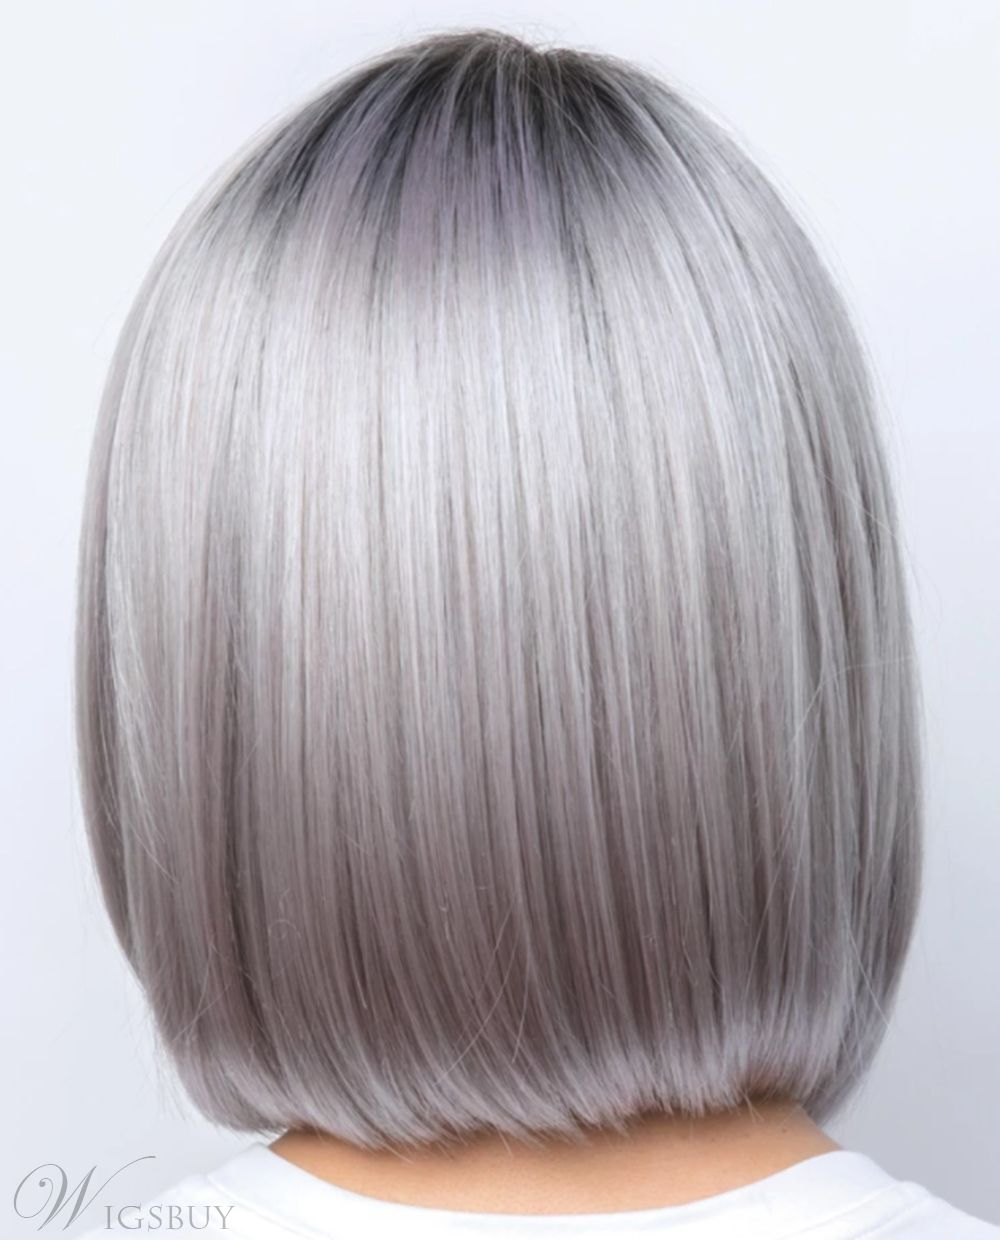 Gray Hair Wigs For African American Women White Cosplay Wig Gray Hair On Black Girl Karen Wig Copper And Grey Hair Black Cosplay Wig